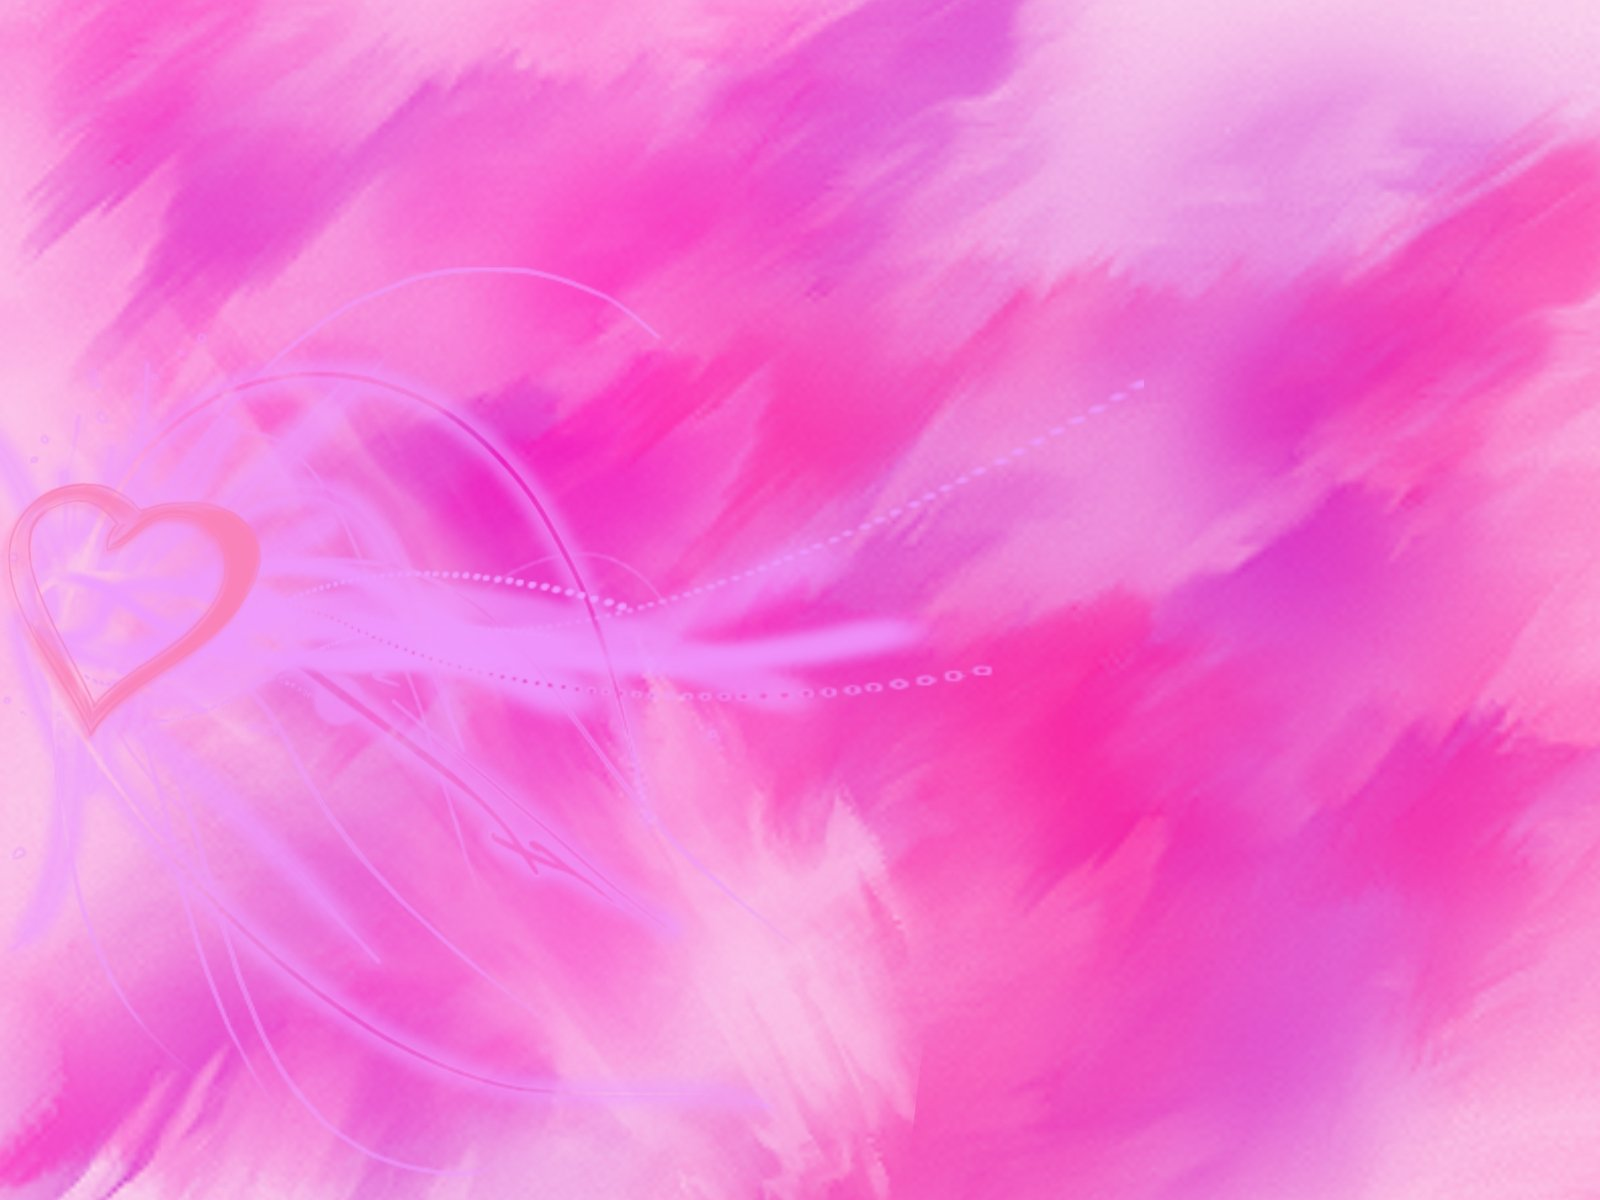 Pretty Pink Backgrounds Tumblr Pink a boo abstract background 1600x1200